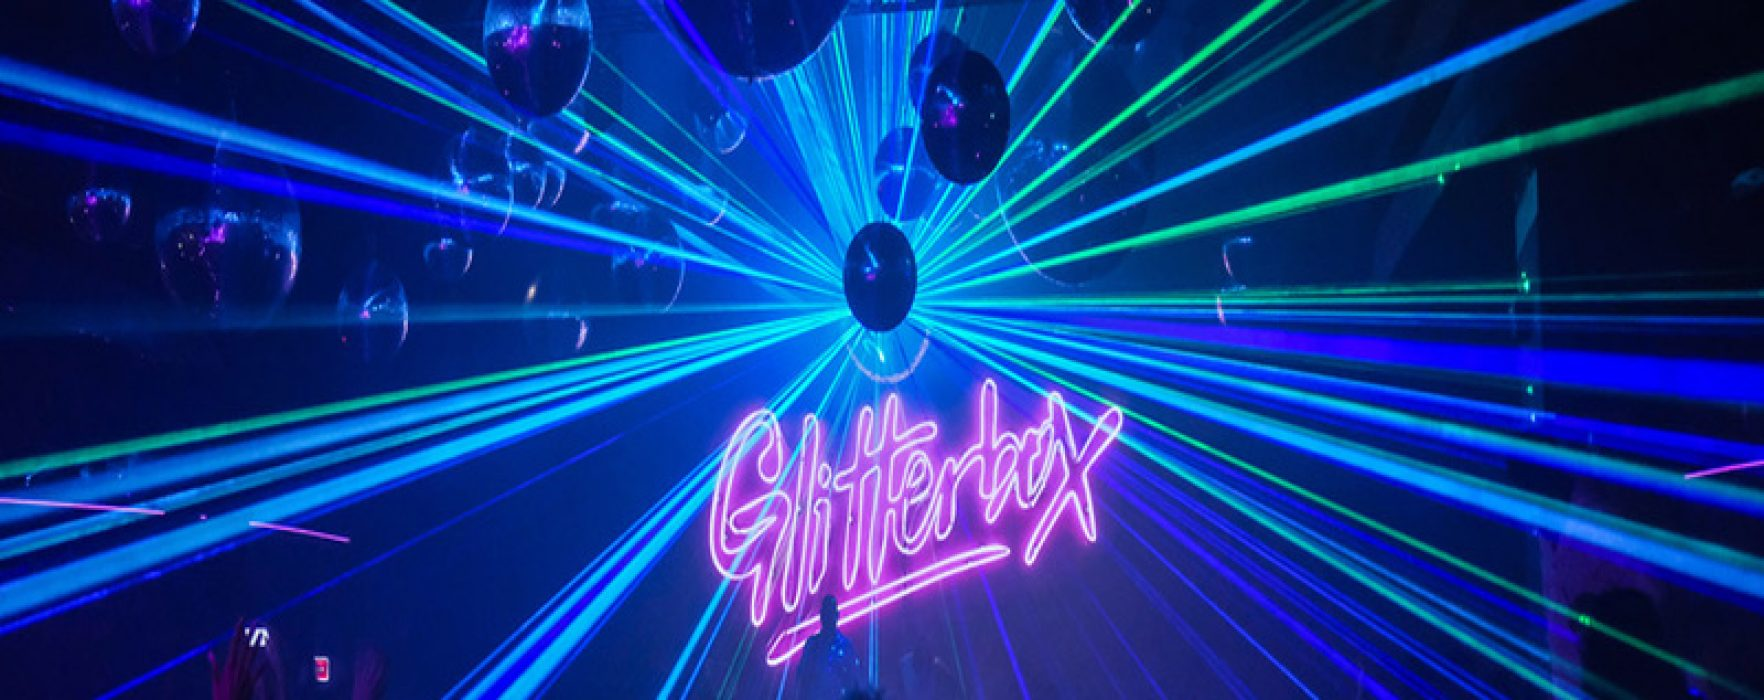 Glitterbox Returns To Ibiza For Summer 2018